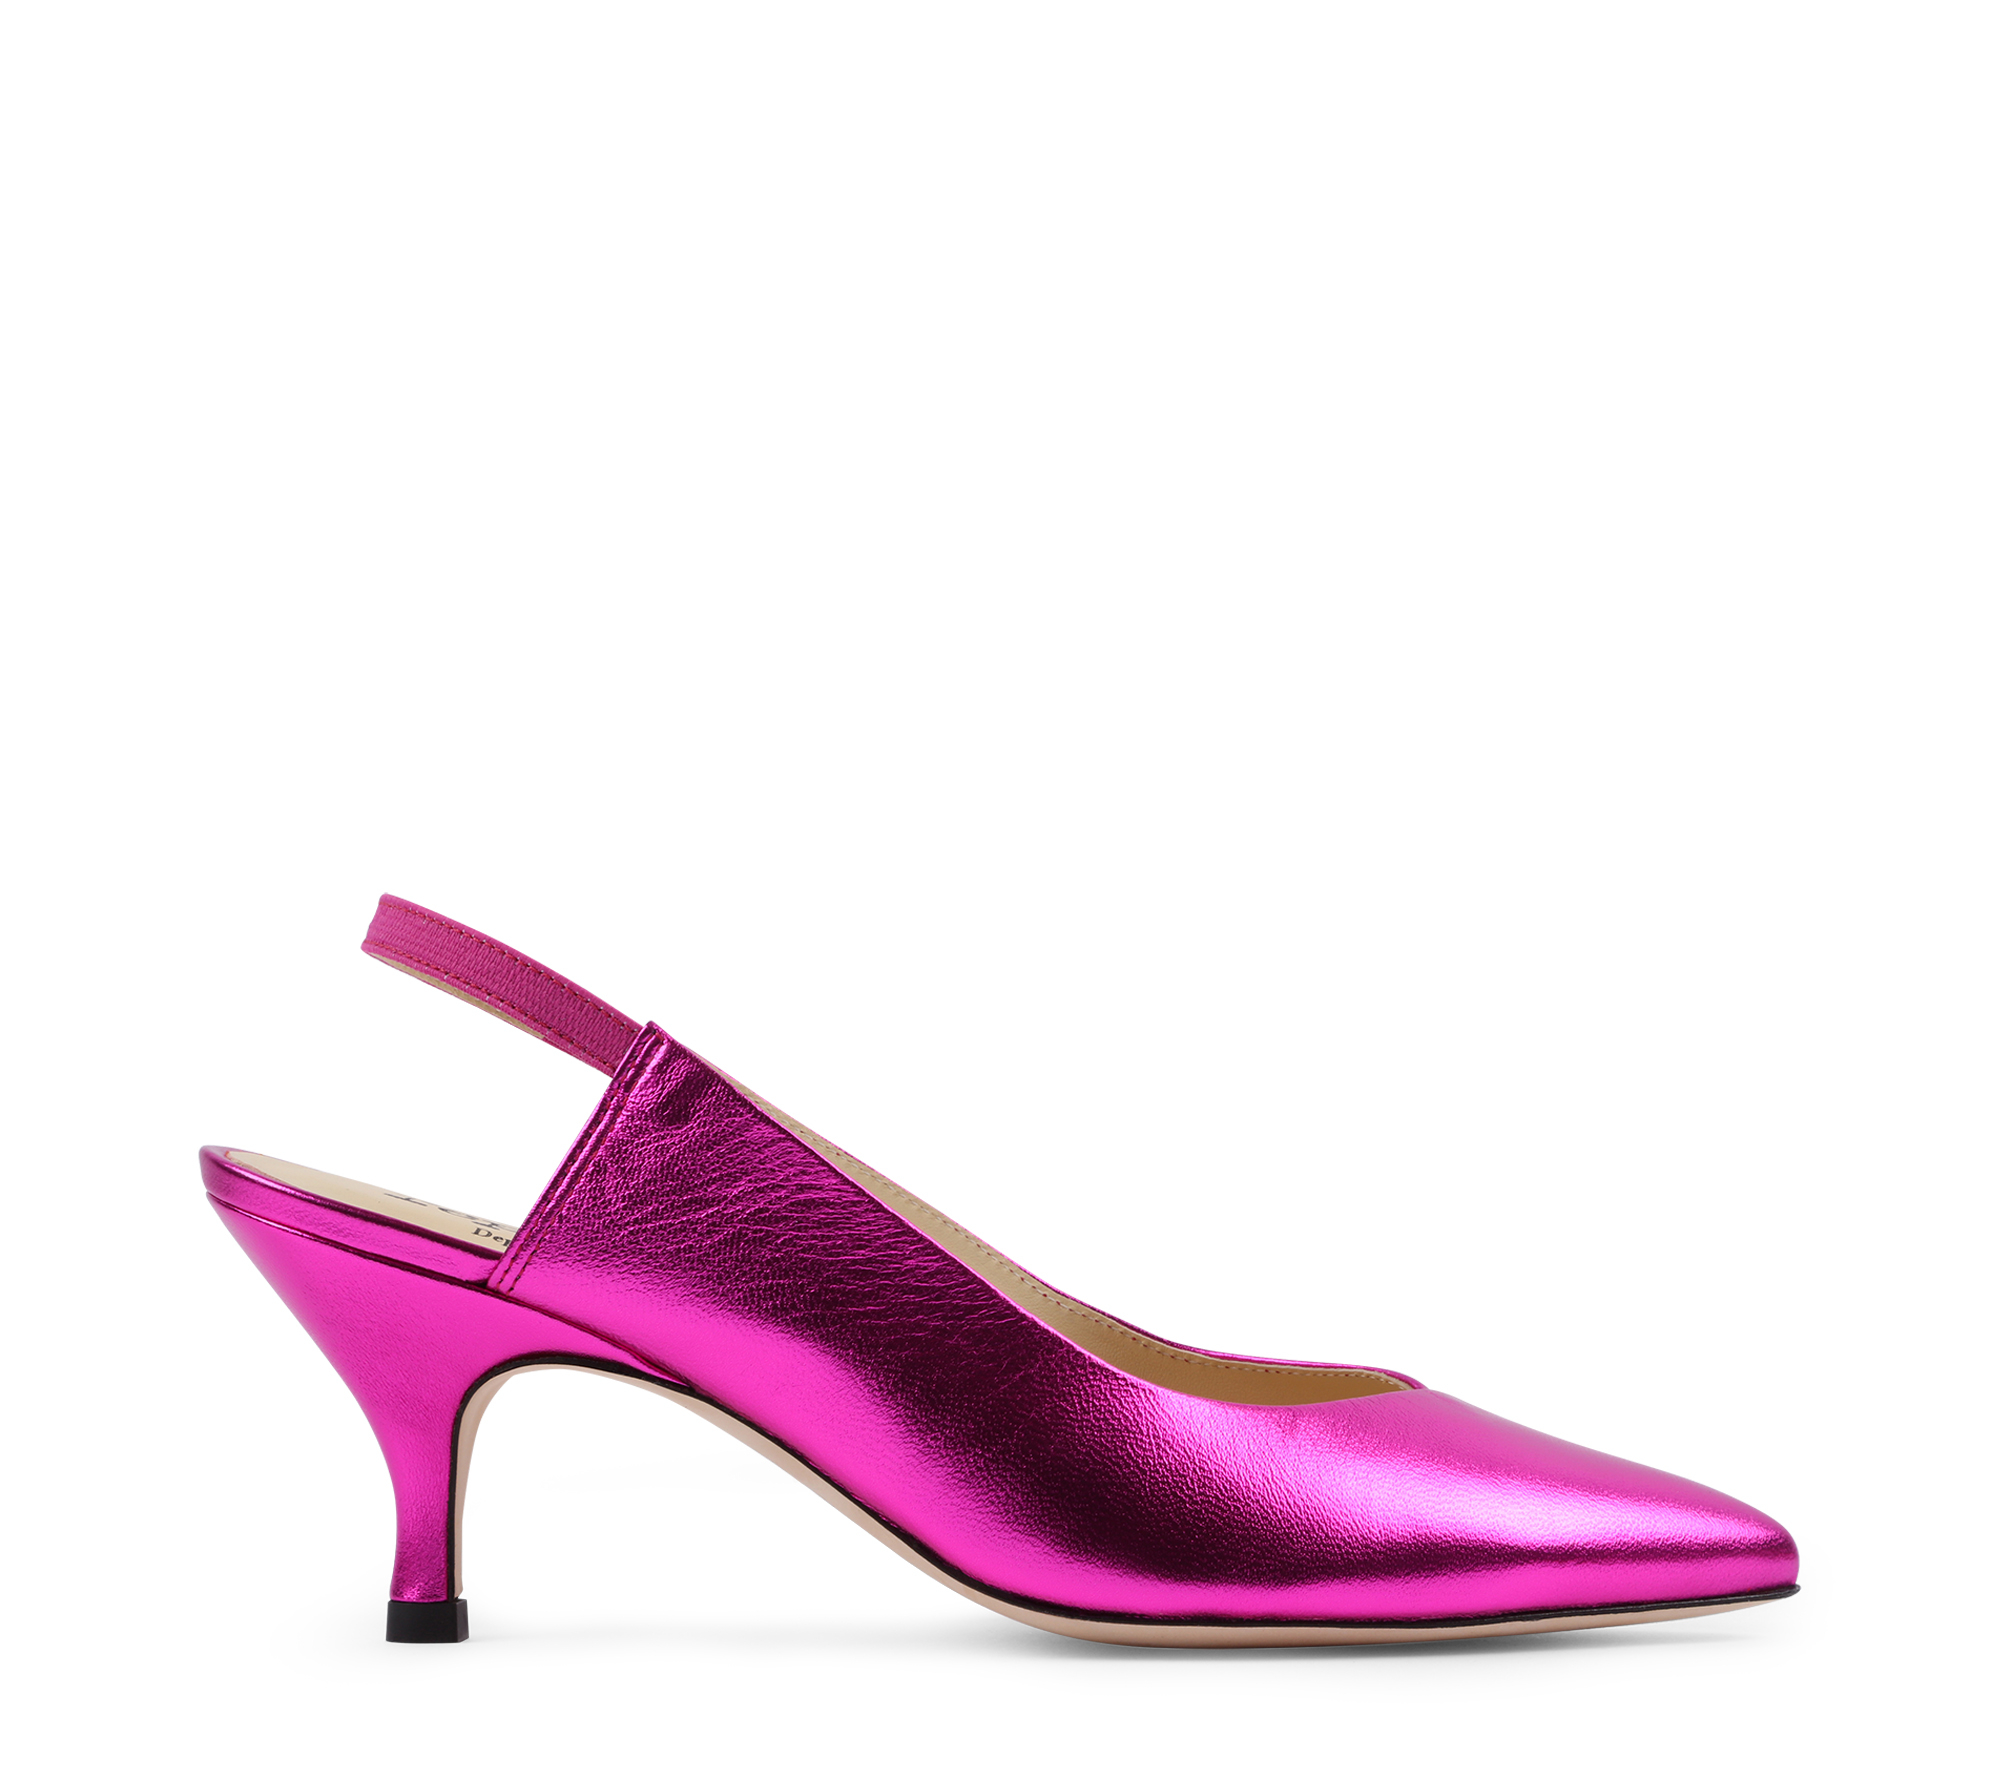 Noreen pumps